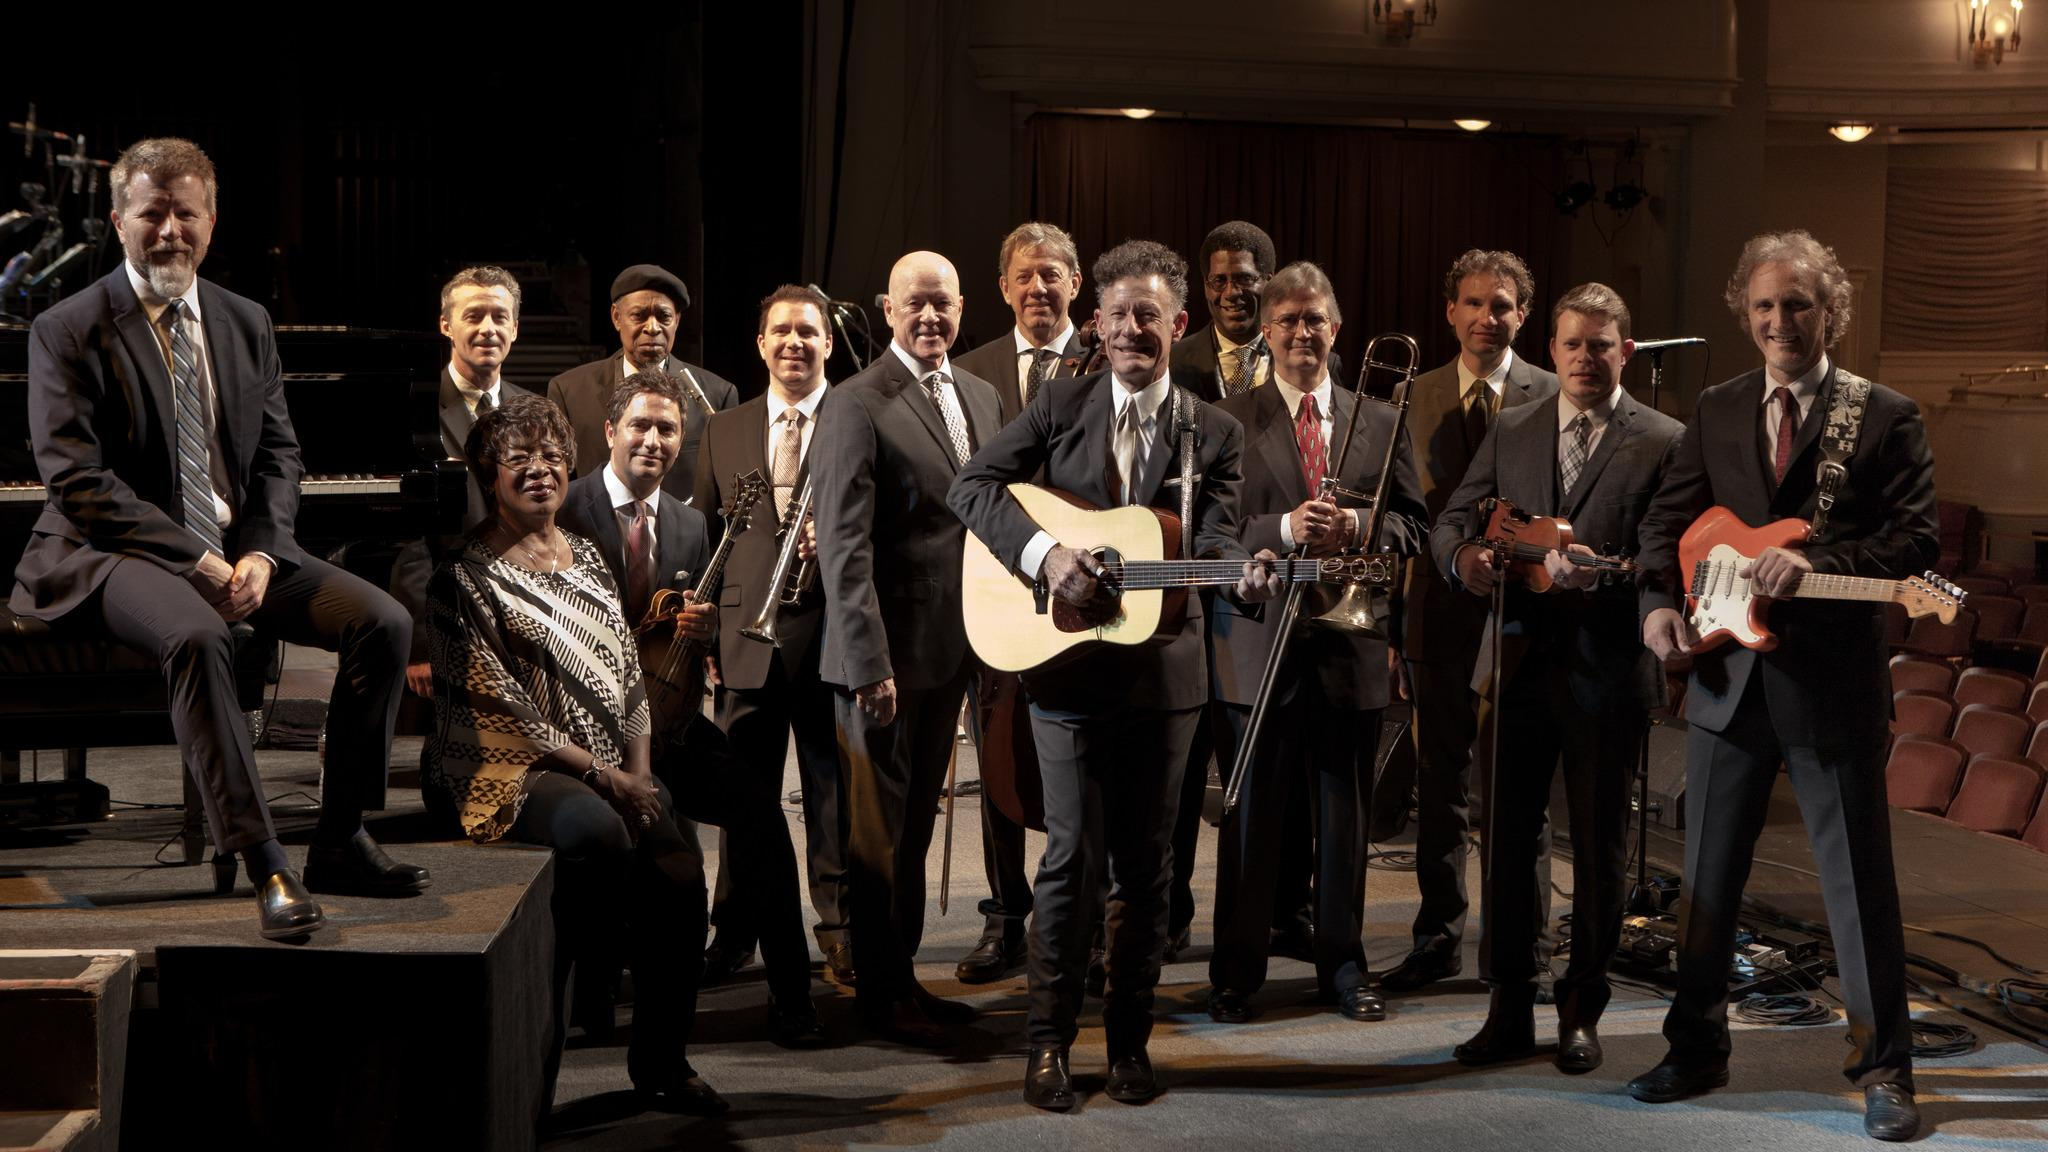 Lyle Lovett & His Large Band & Emmylou Harris